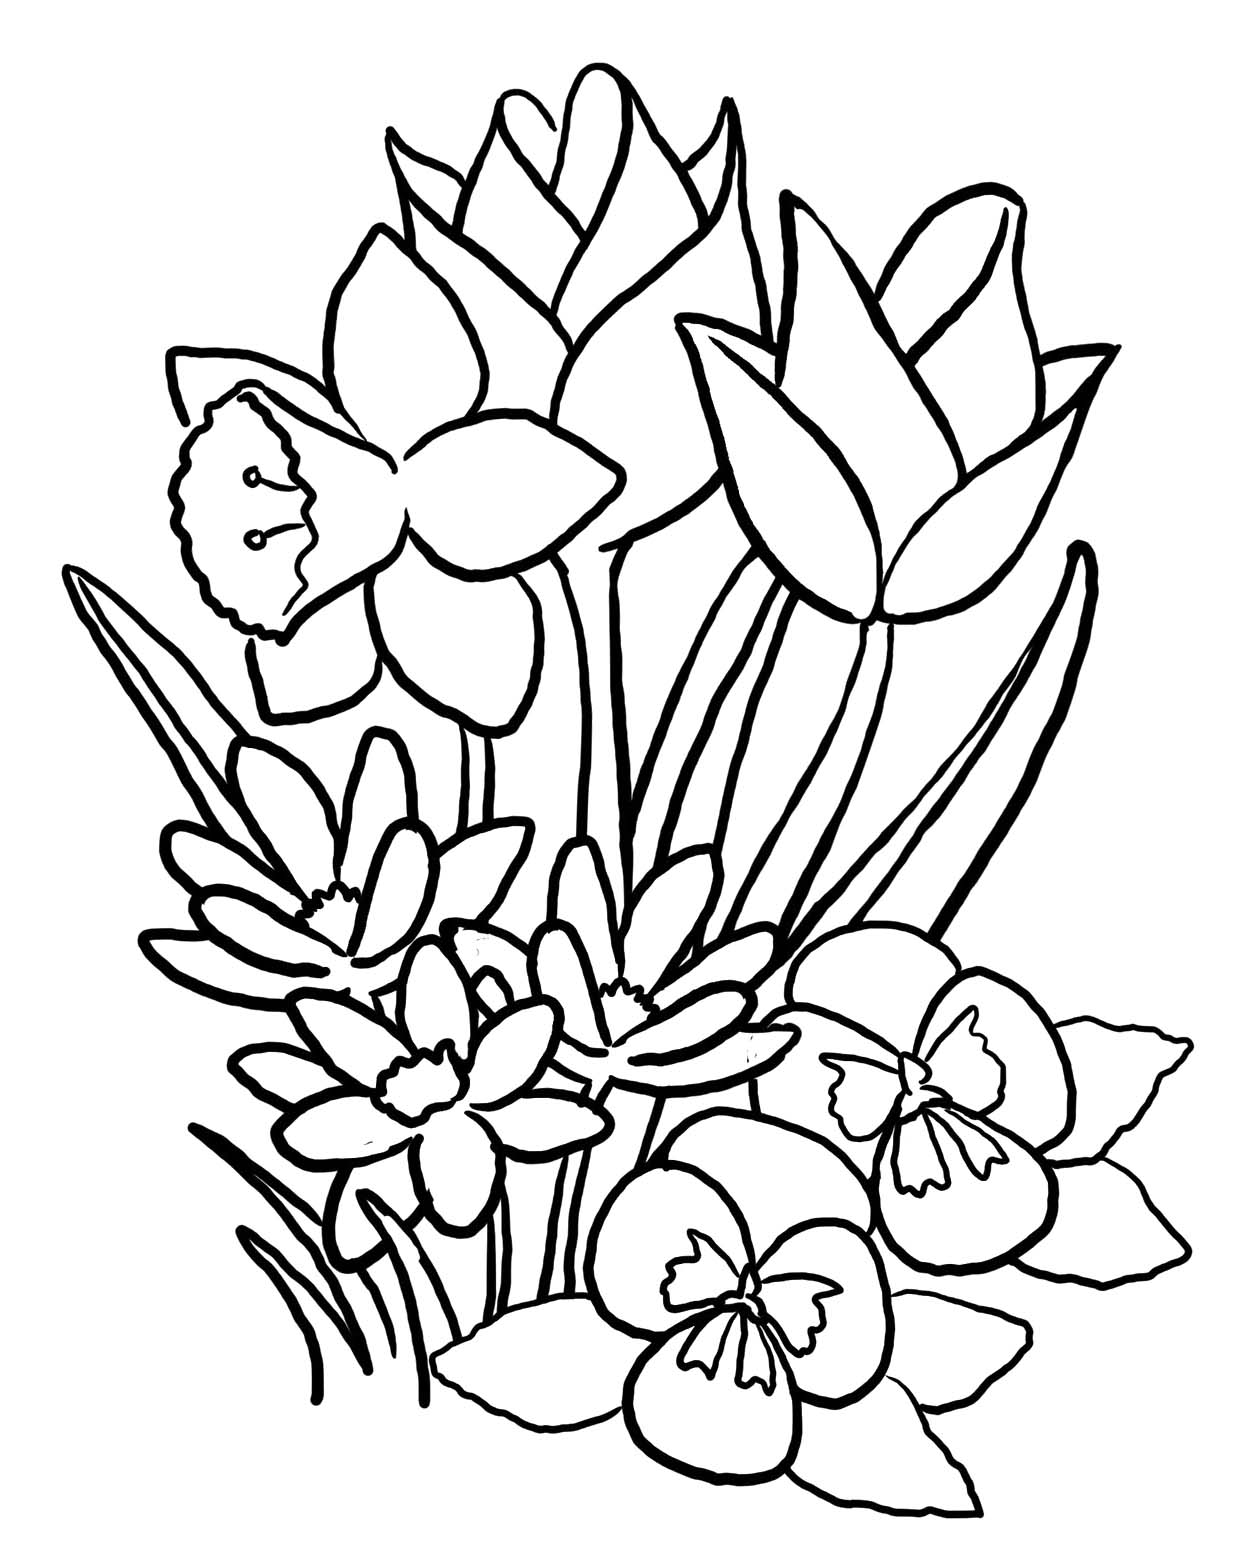 Flower coloring in pages - Flower Pictures To Print And Color